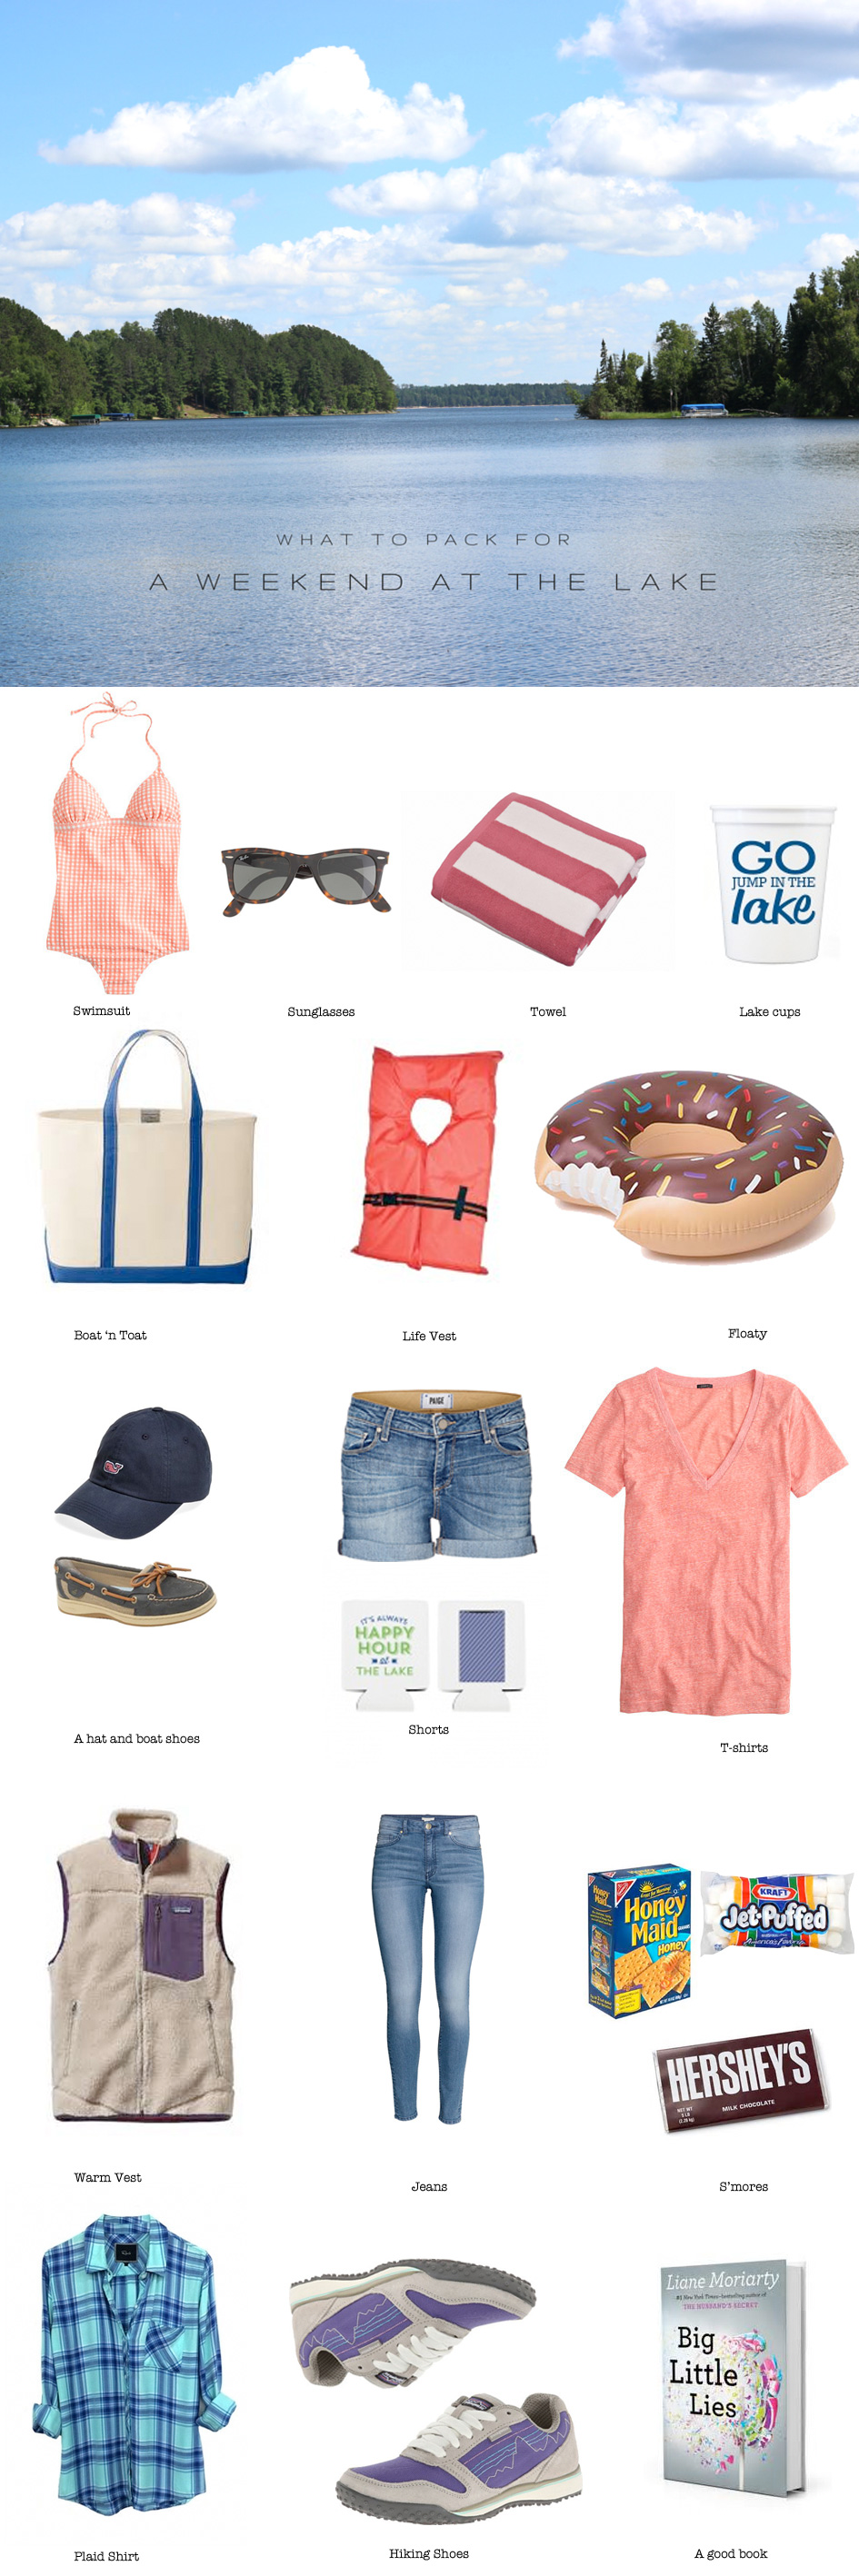 What to Pack for a Weekend at the Lake